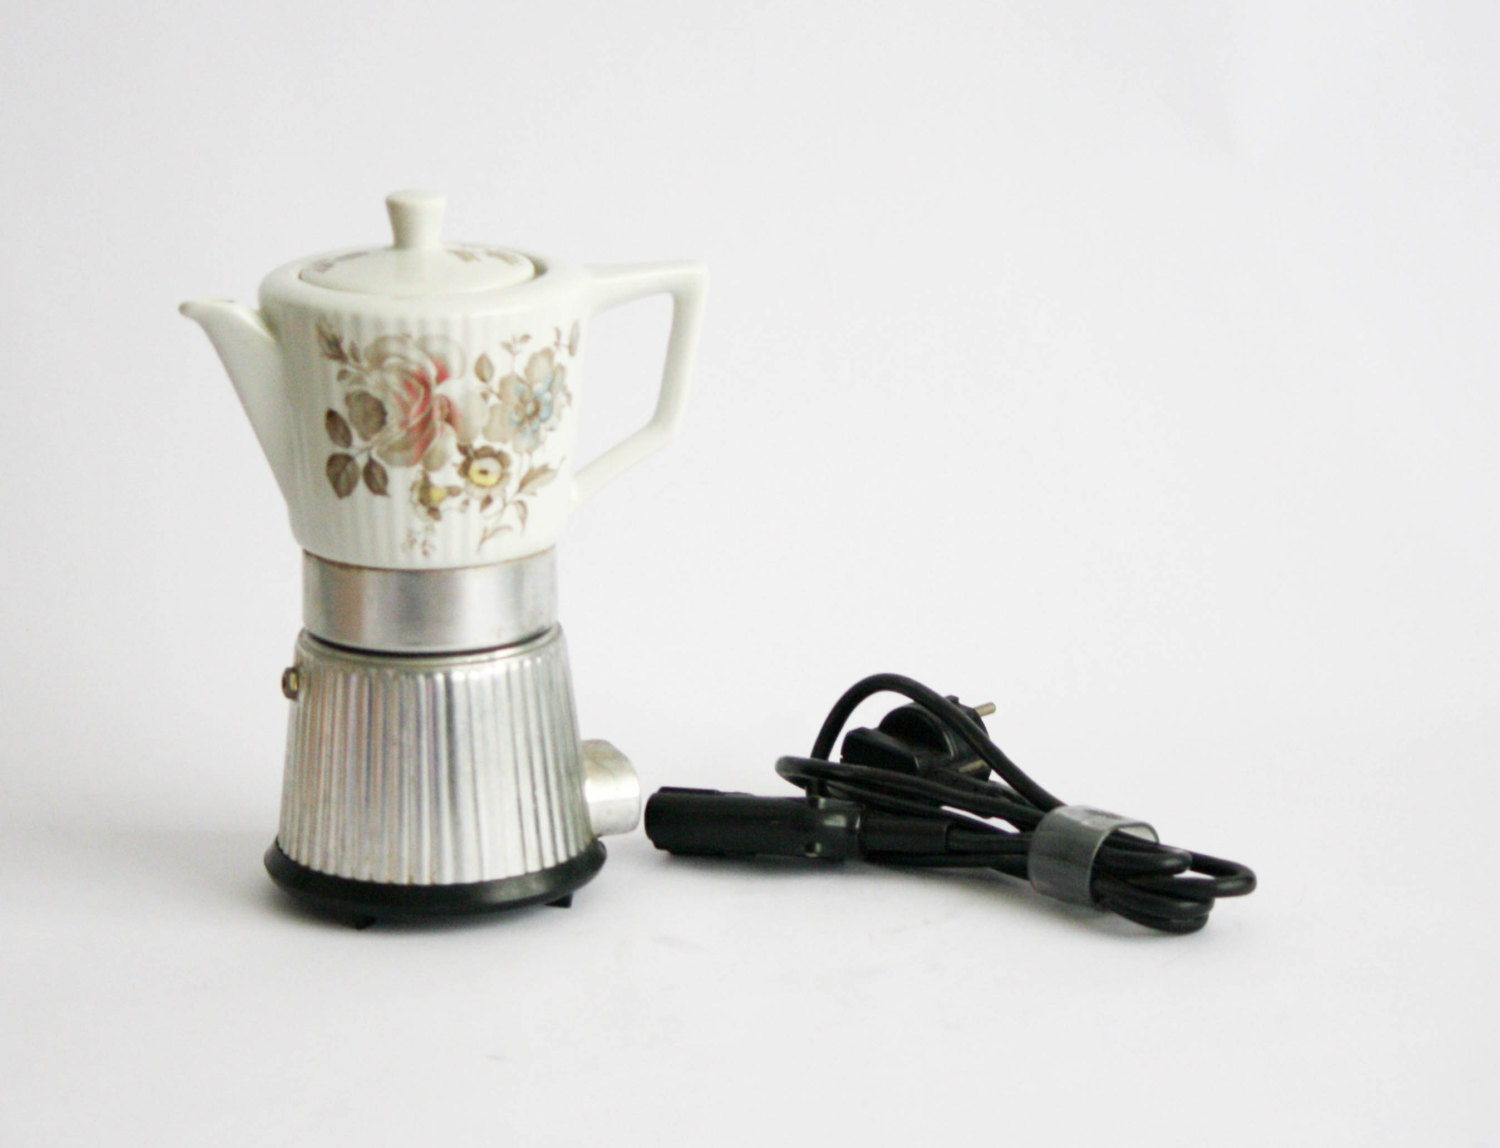 Electric Coffee Maker Invented : Girmi Vintage Electric Coffee Maker / Coffee Pot Made in